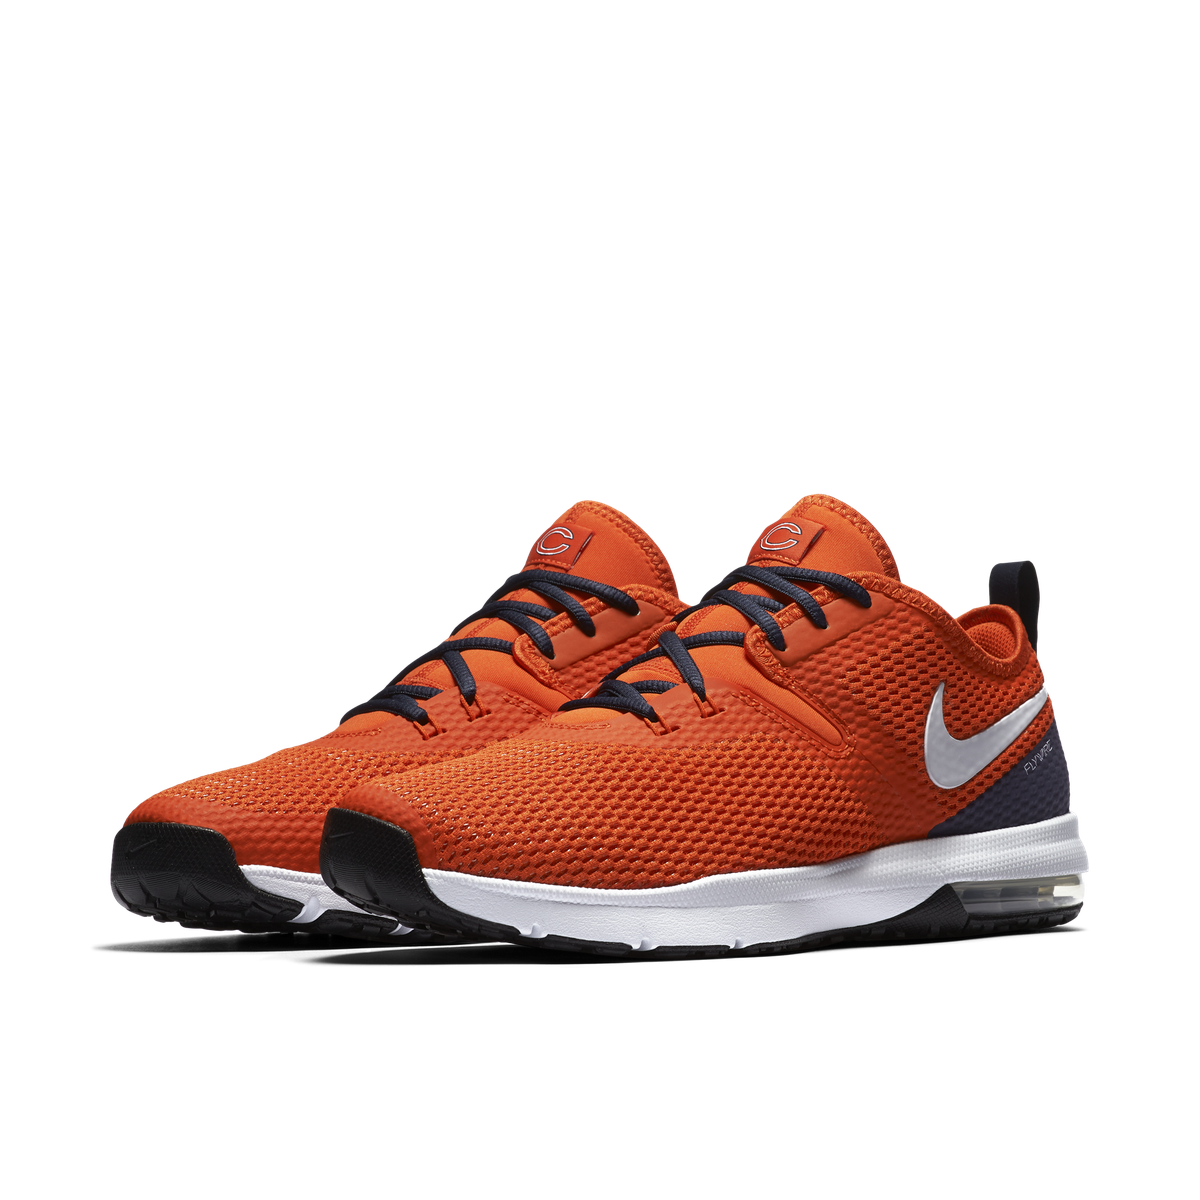 promo code 0b01f 15410 Bears Air Max Typha 2 Mens Shoe for 109.99 Fanatics